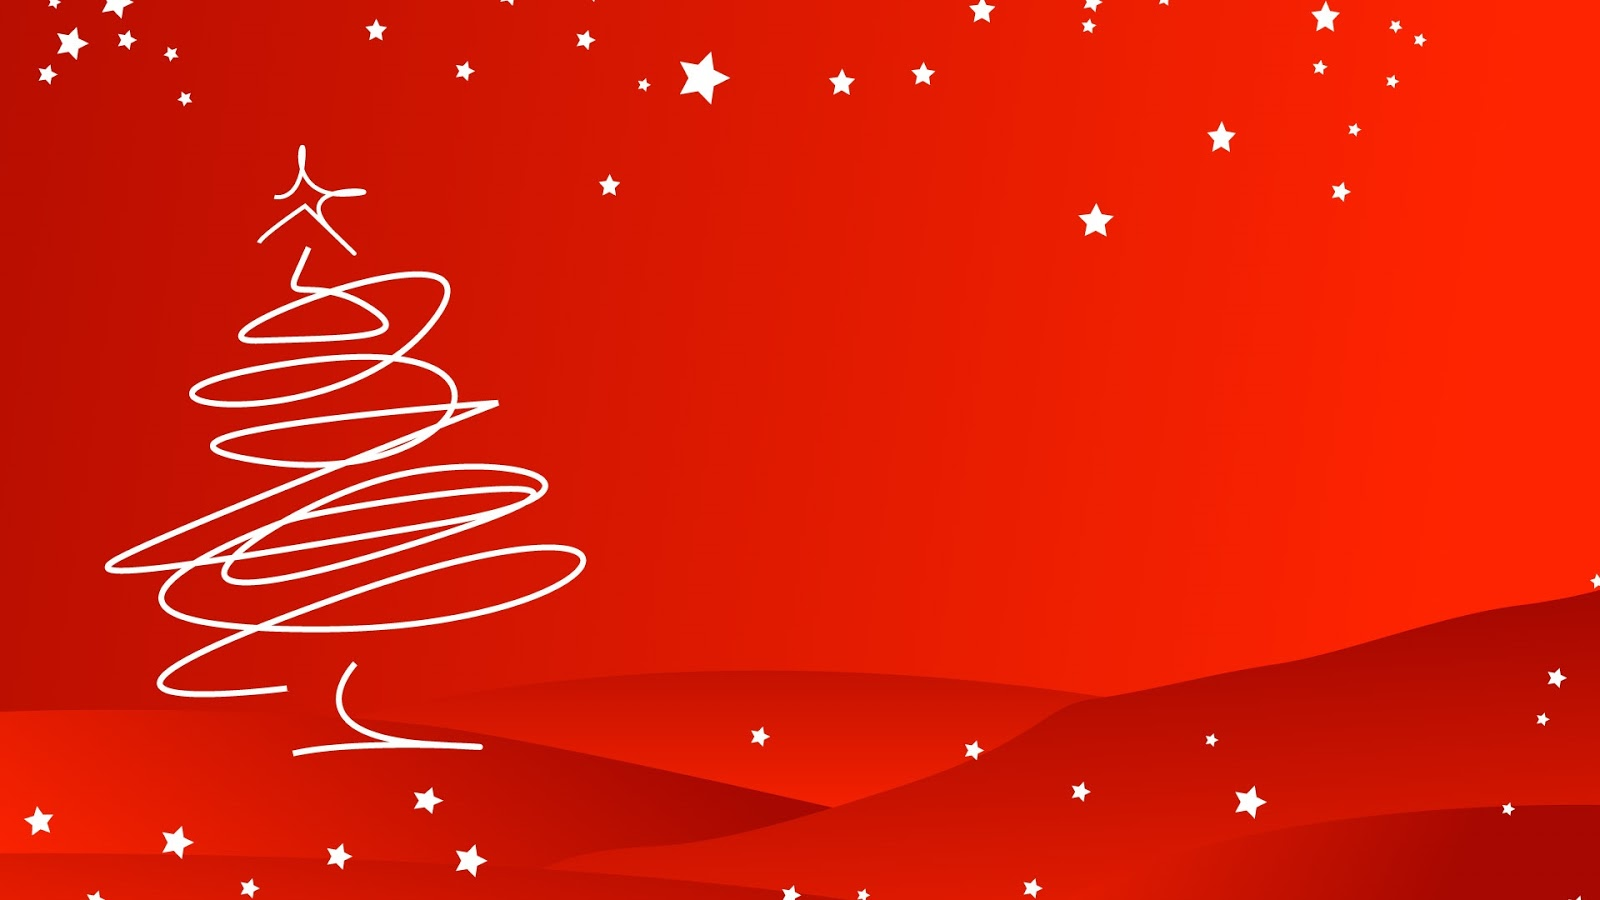 high definition wallpapers 1920x1080 christmas - photo #32